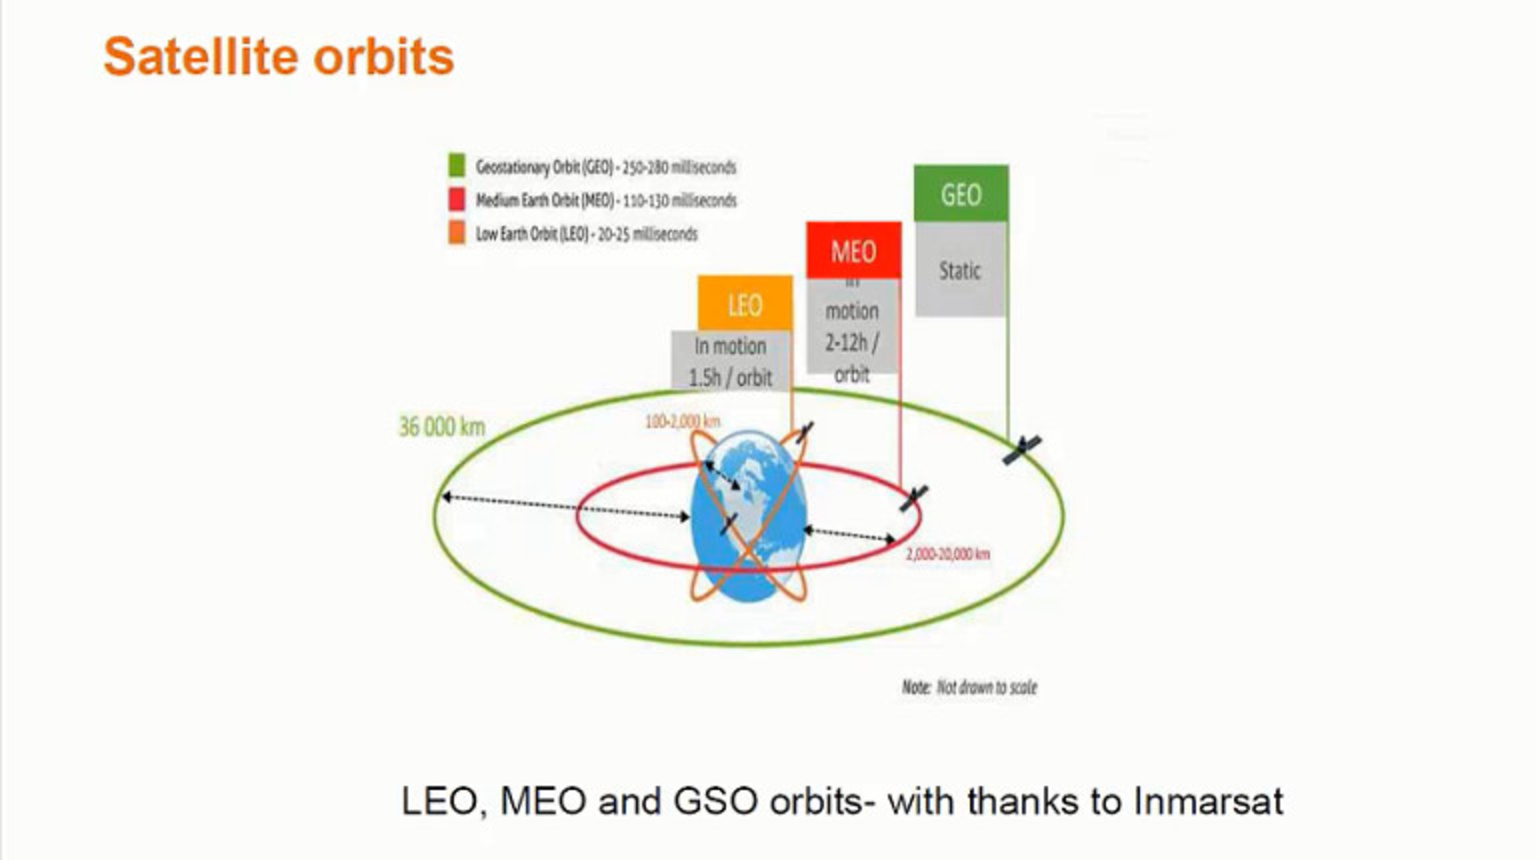 IEEE Future Networks: 5G and Satellite Spectrum and Standards